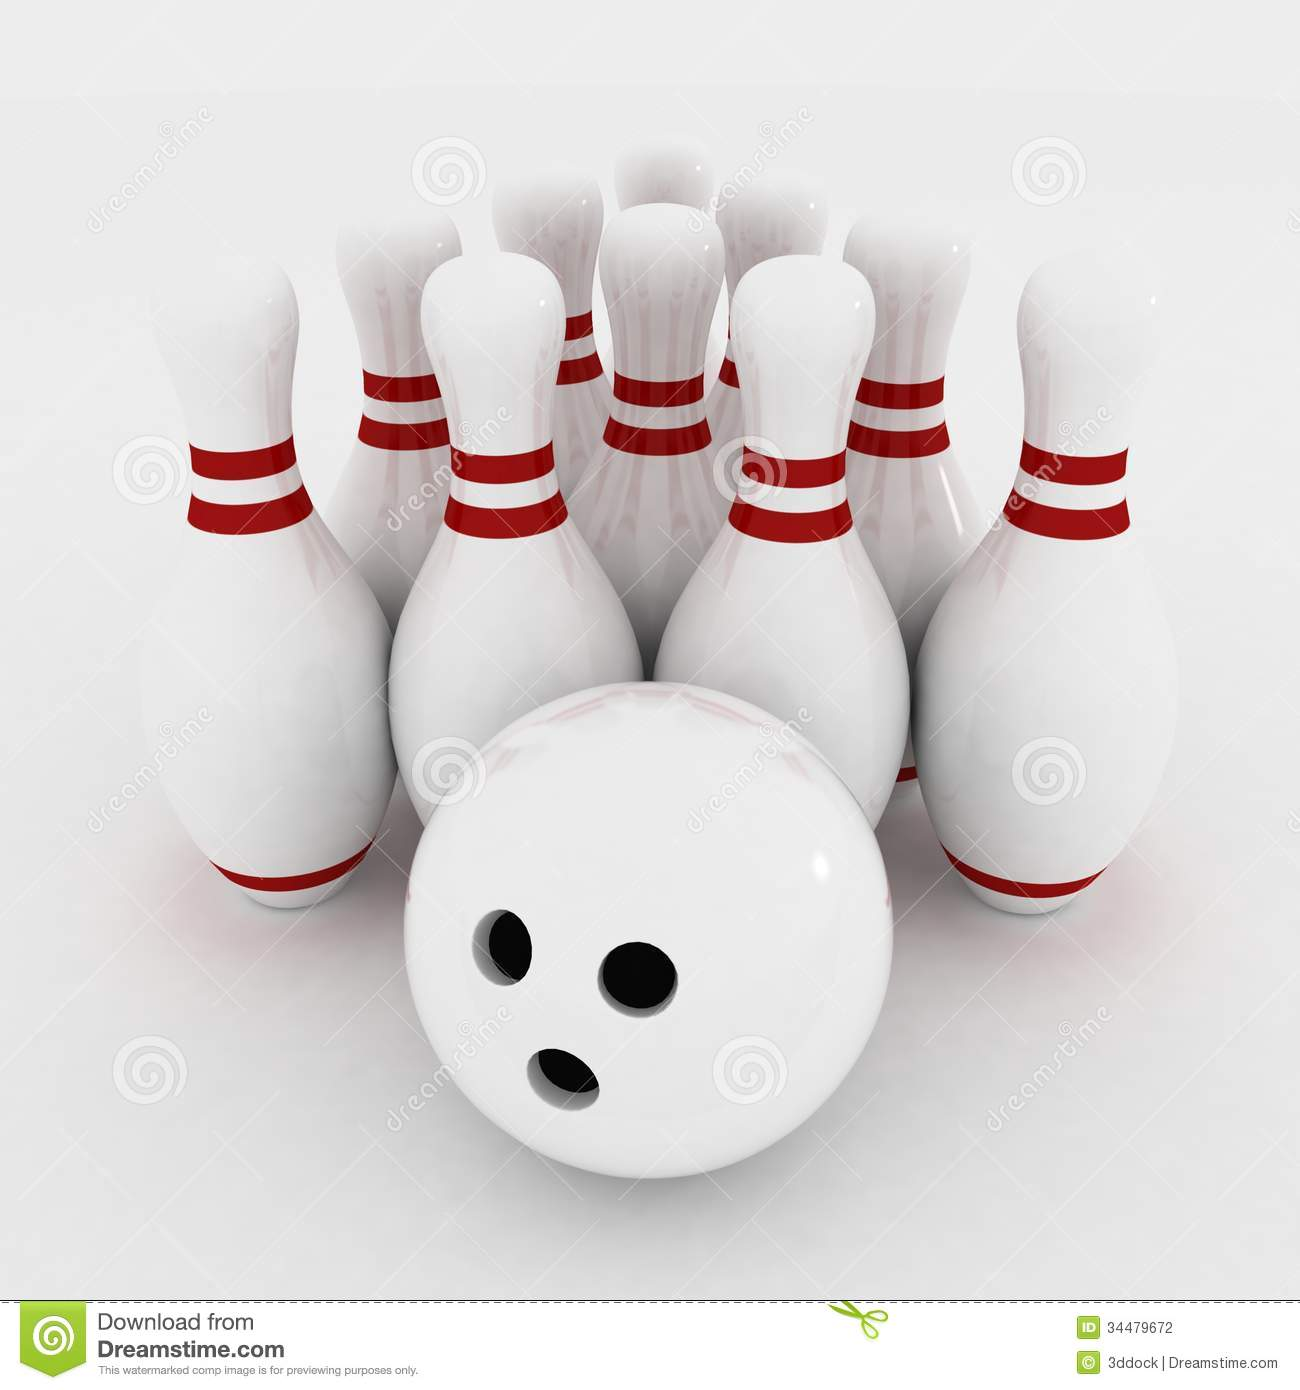 Quille et boule de bowling photographie stock image for Decoration quille de bowling